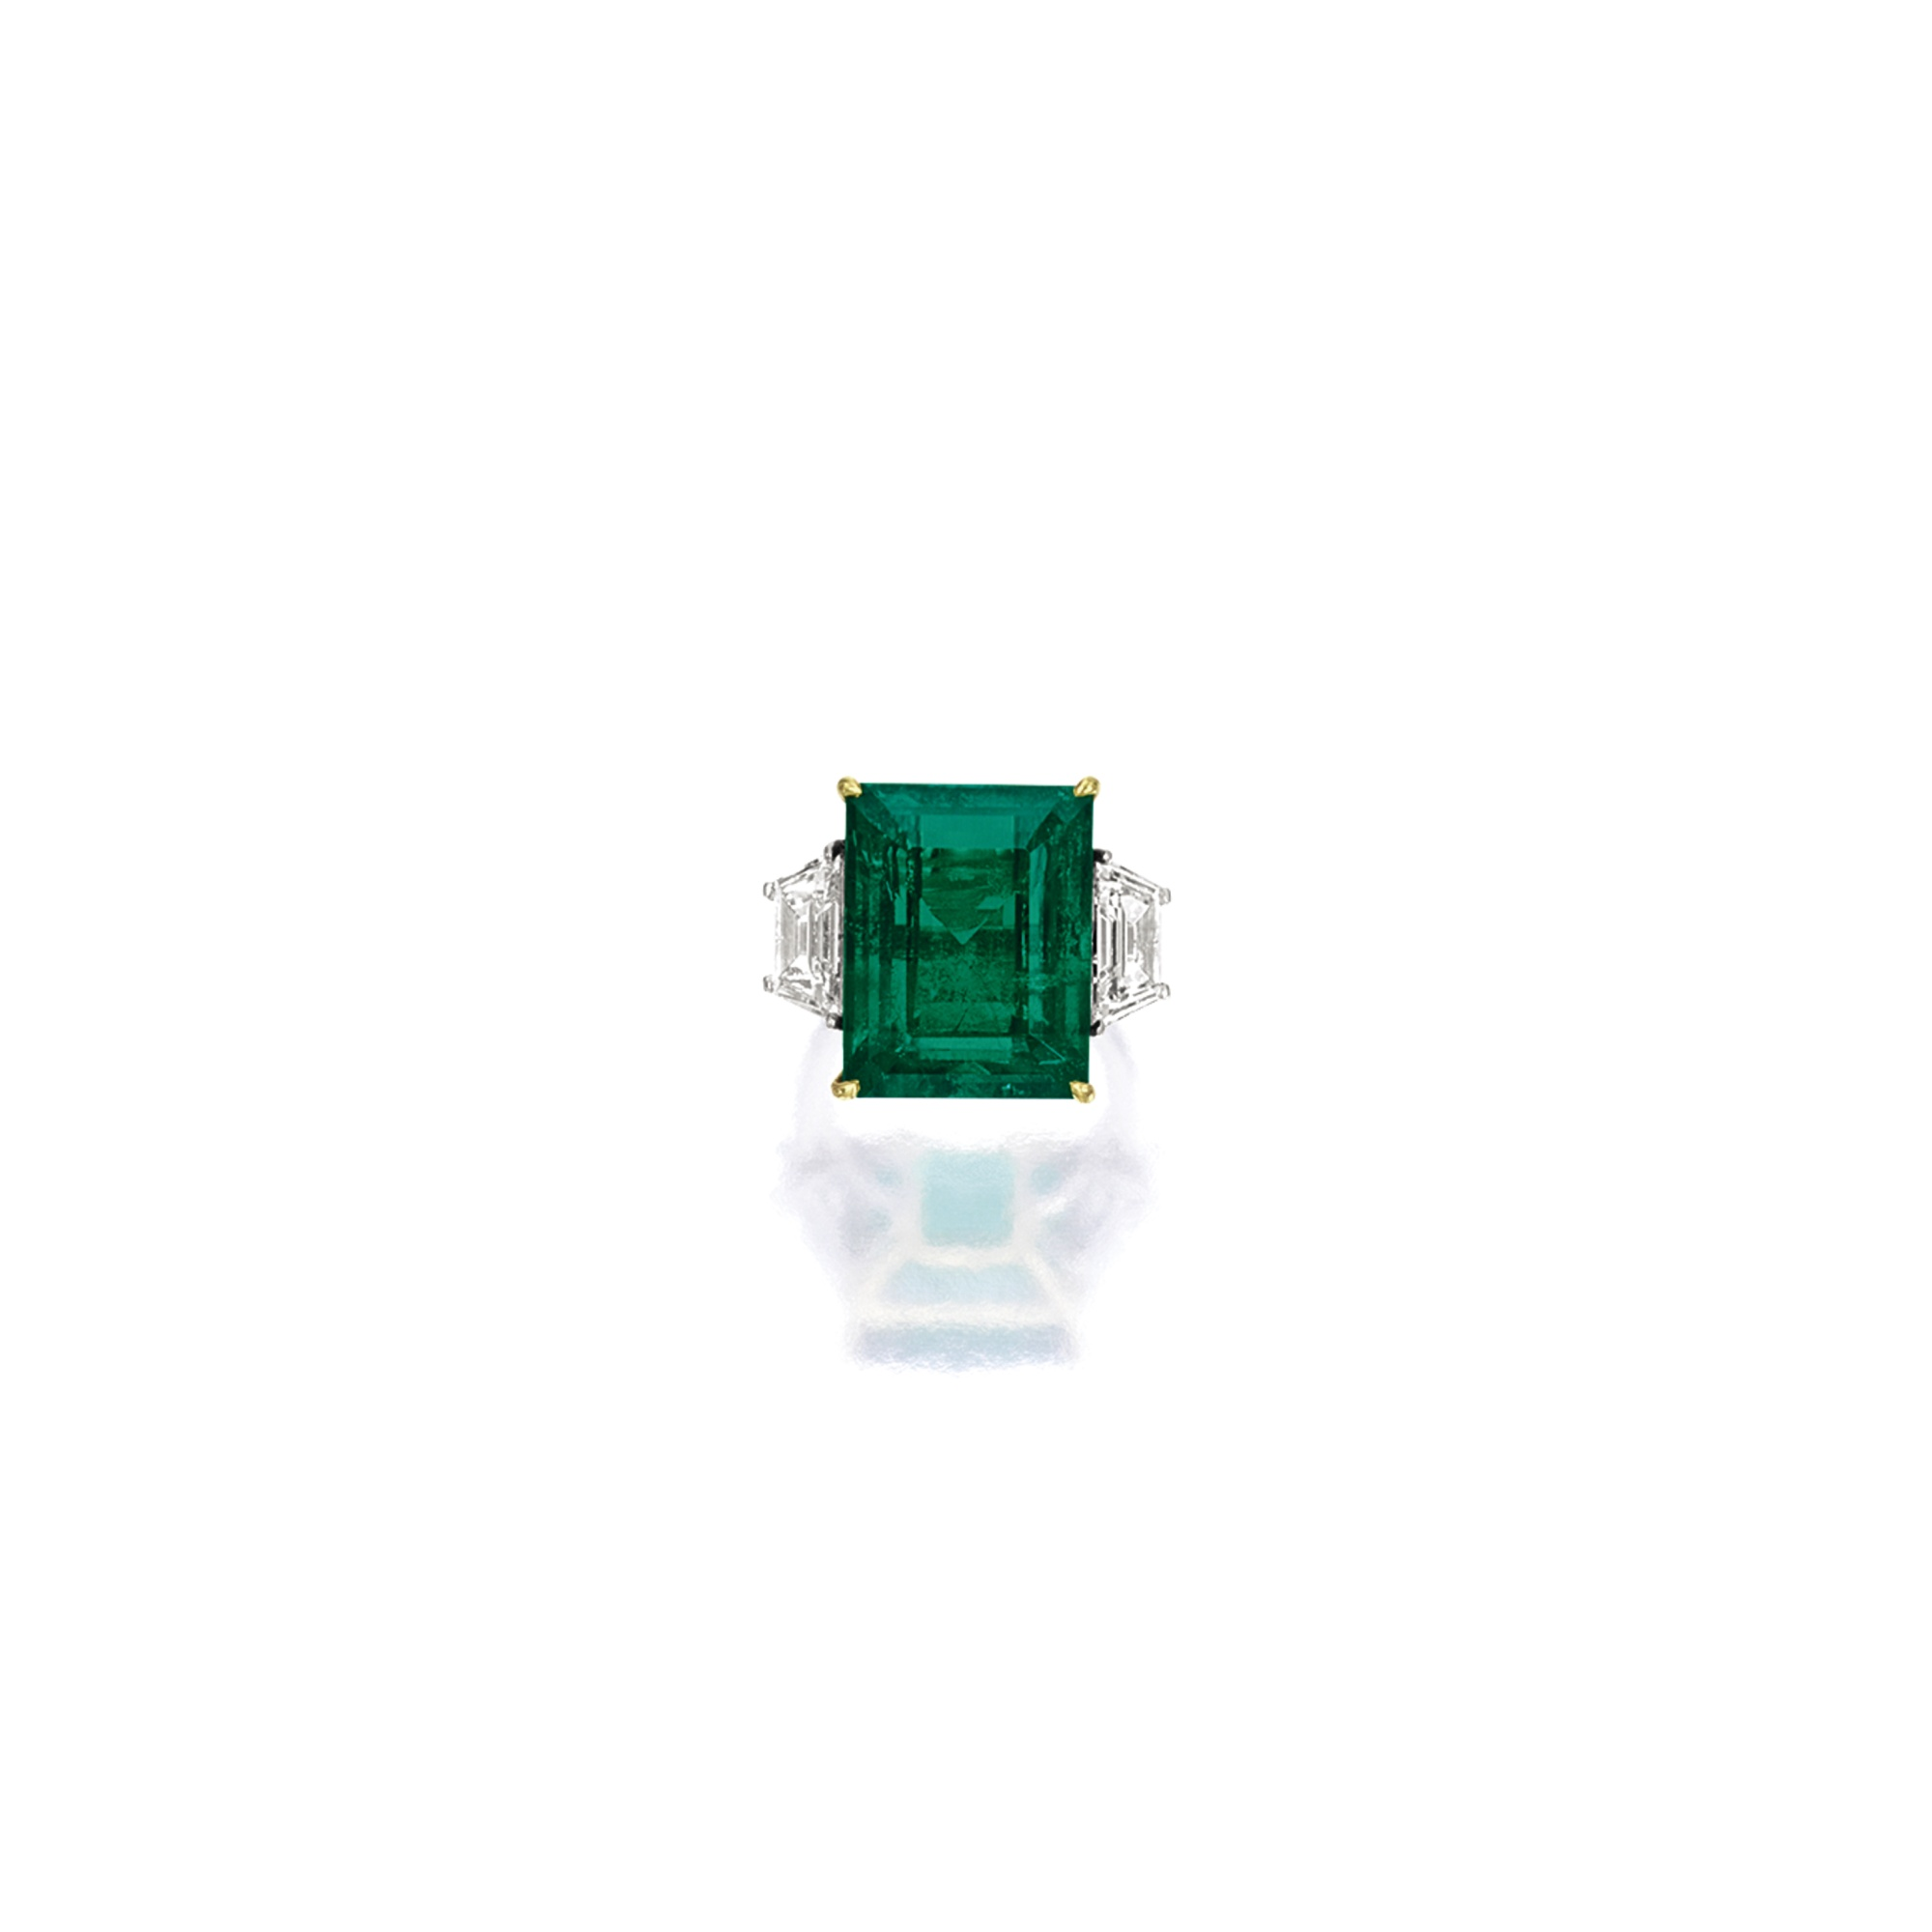 wg emerald band ring round radiant cut mounts diamond set mount halo semi engagement wedding